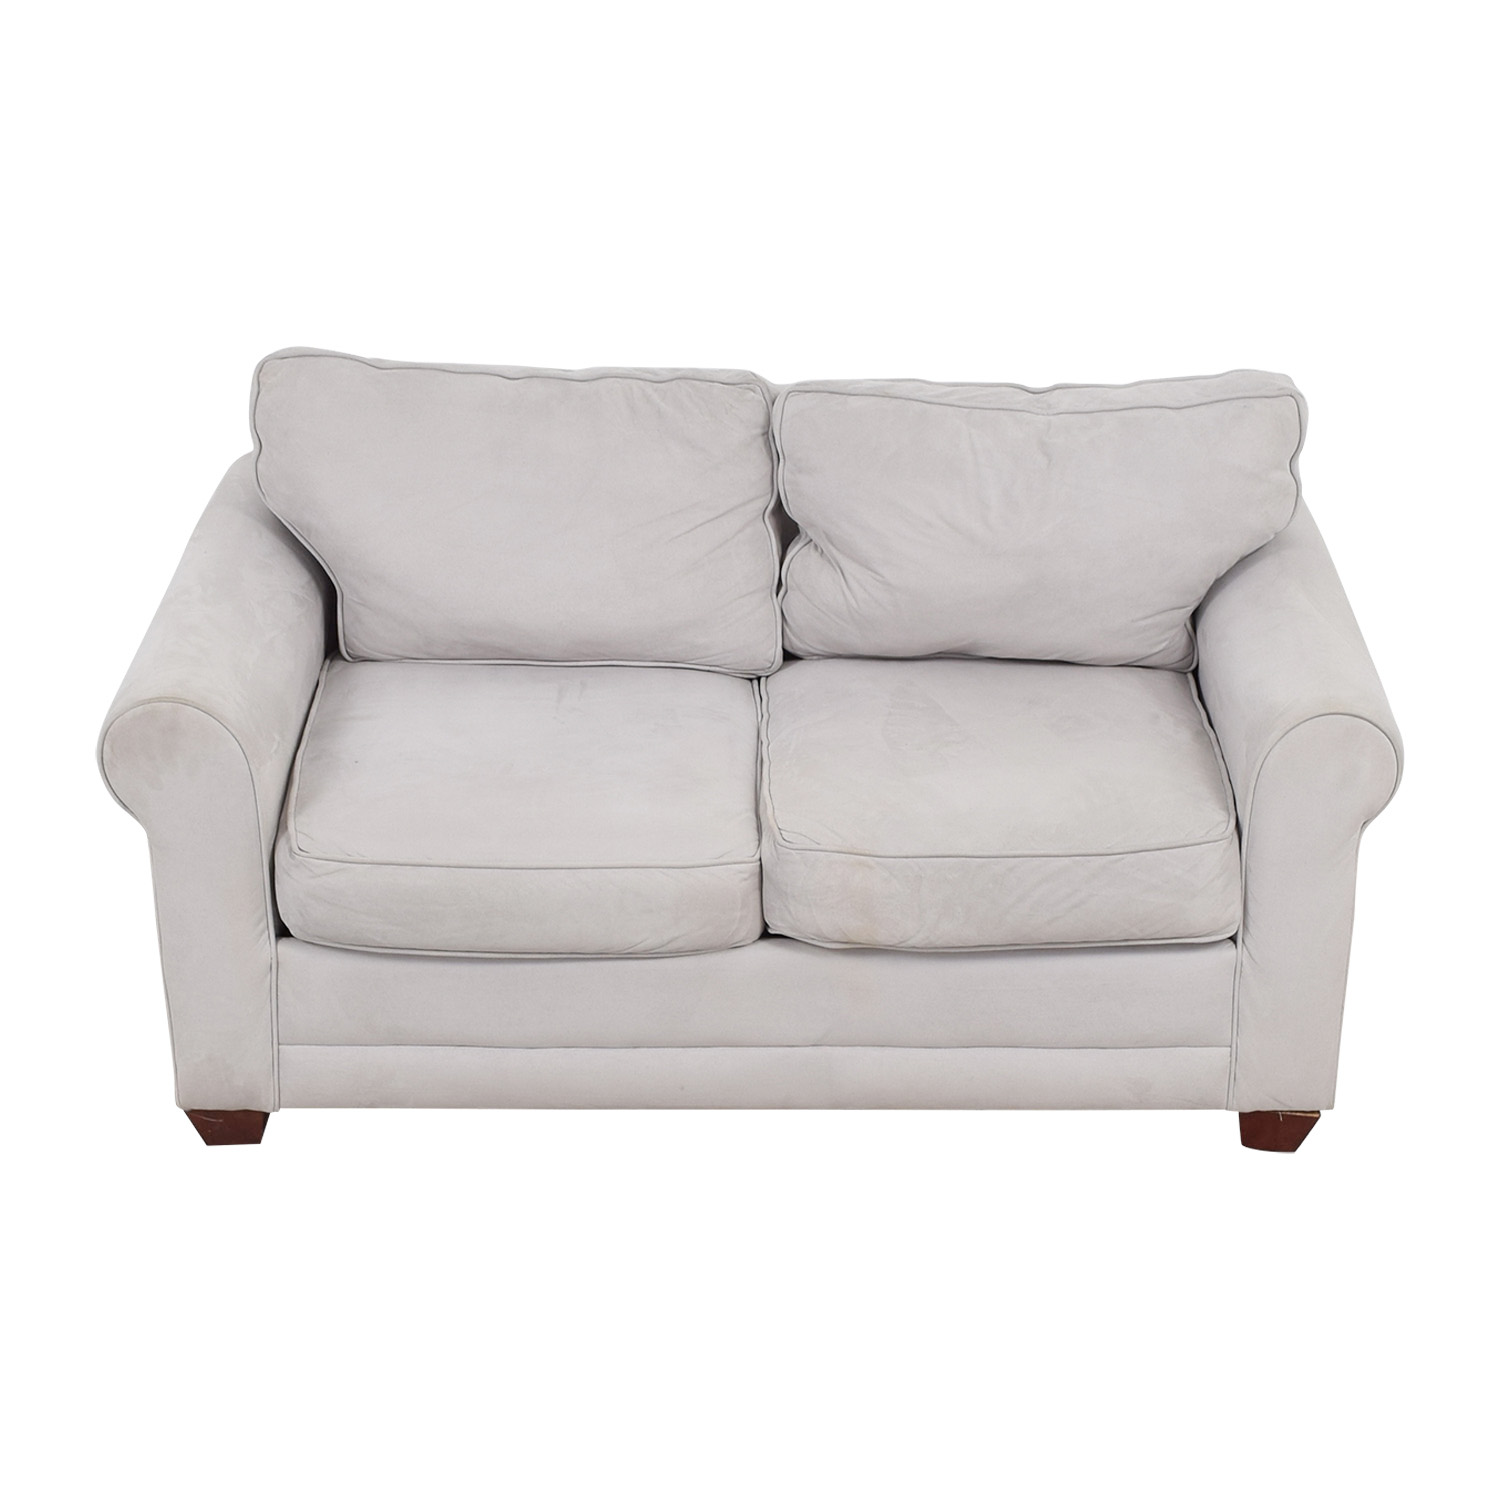 slipcovers wells size sofa enhancing decorations room couches sale loveseats and loveseat bedroom small clearance ors couch sofas full white inexpensive affordable together as for leather living sectional of cheap traditional awesome settee with purple furniture custom color then